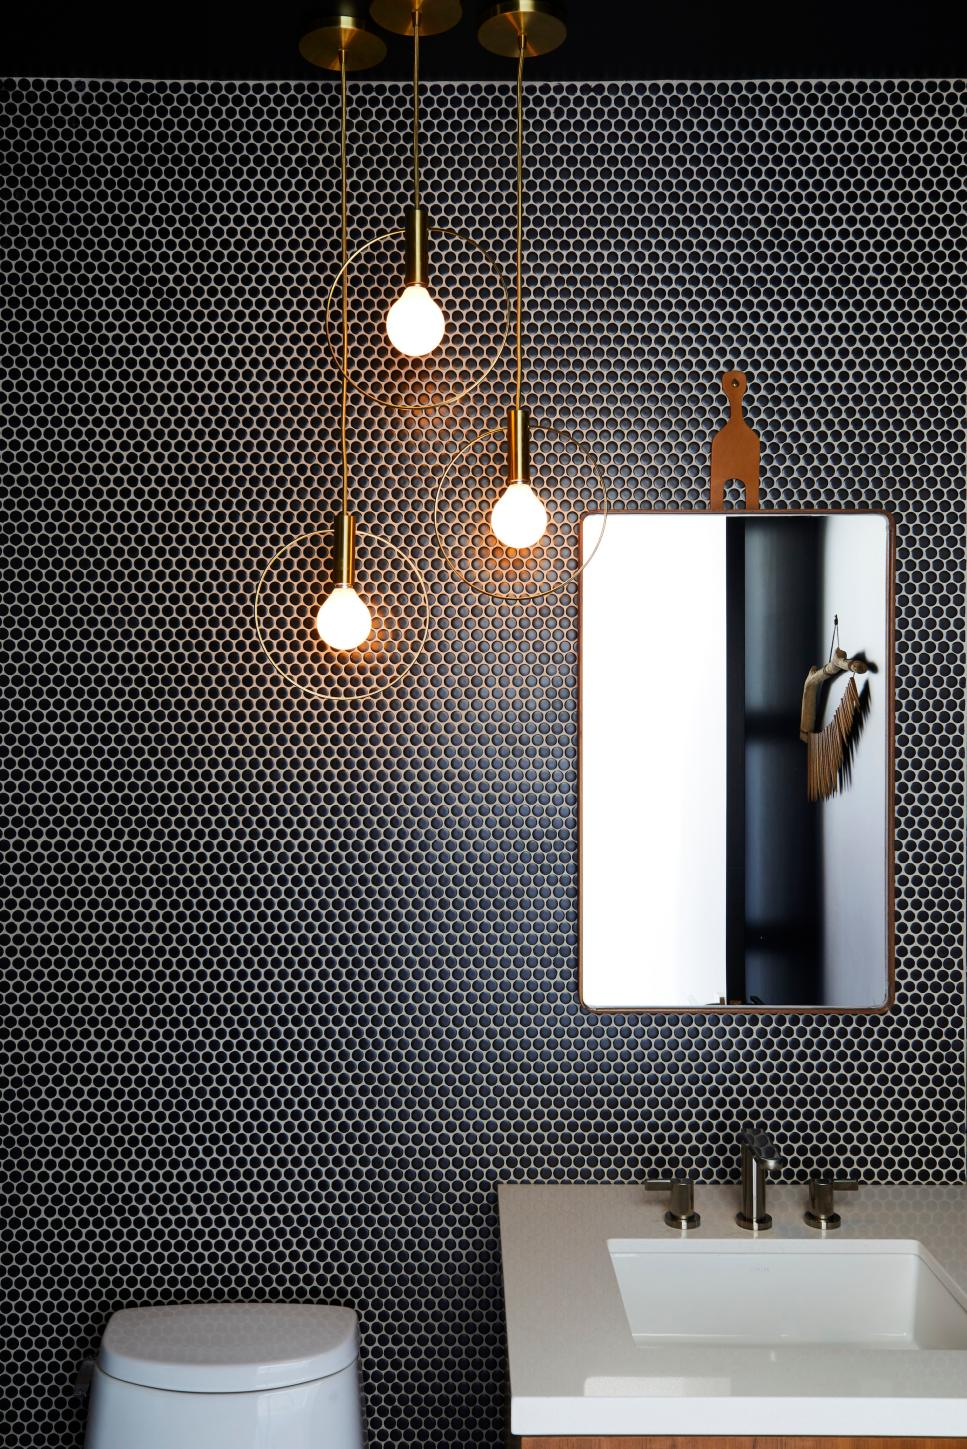 dark penny mosaic with statement lights